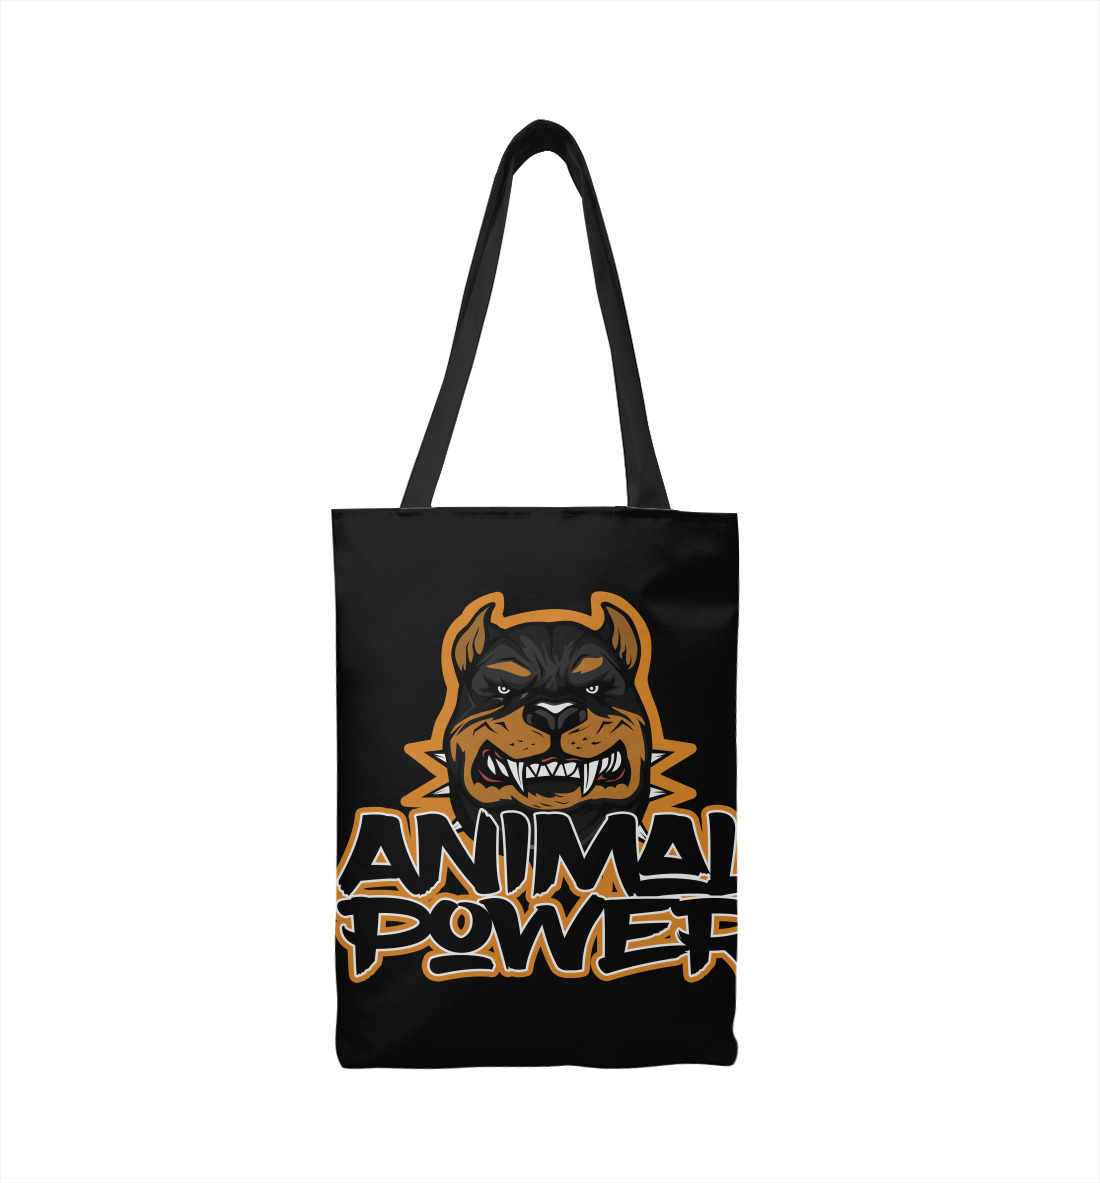 Animal power фото